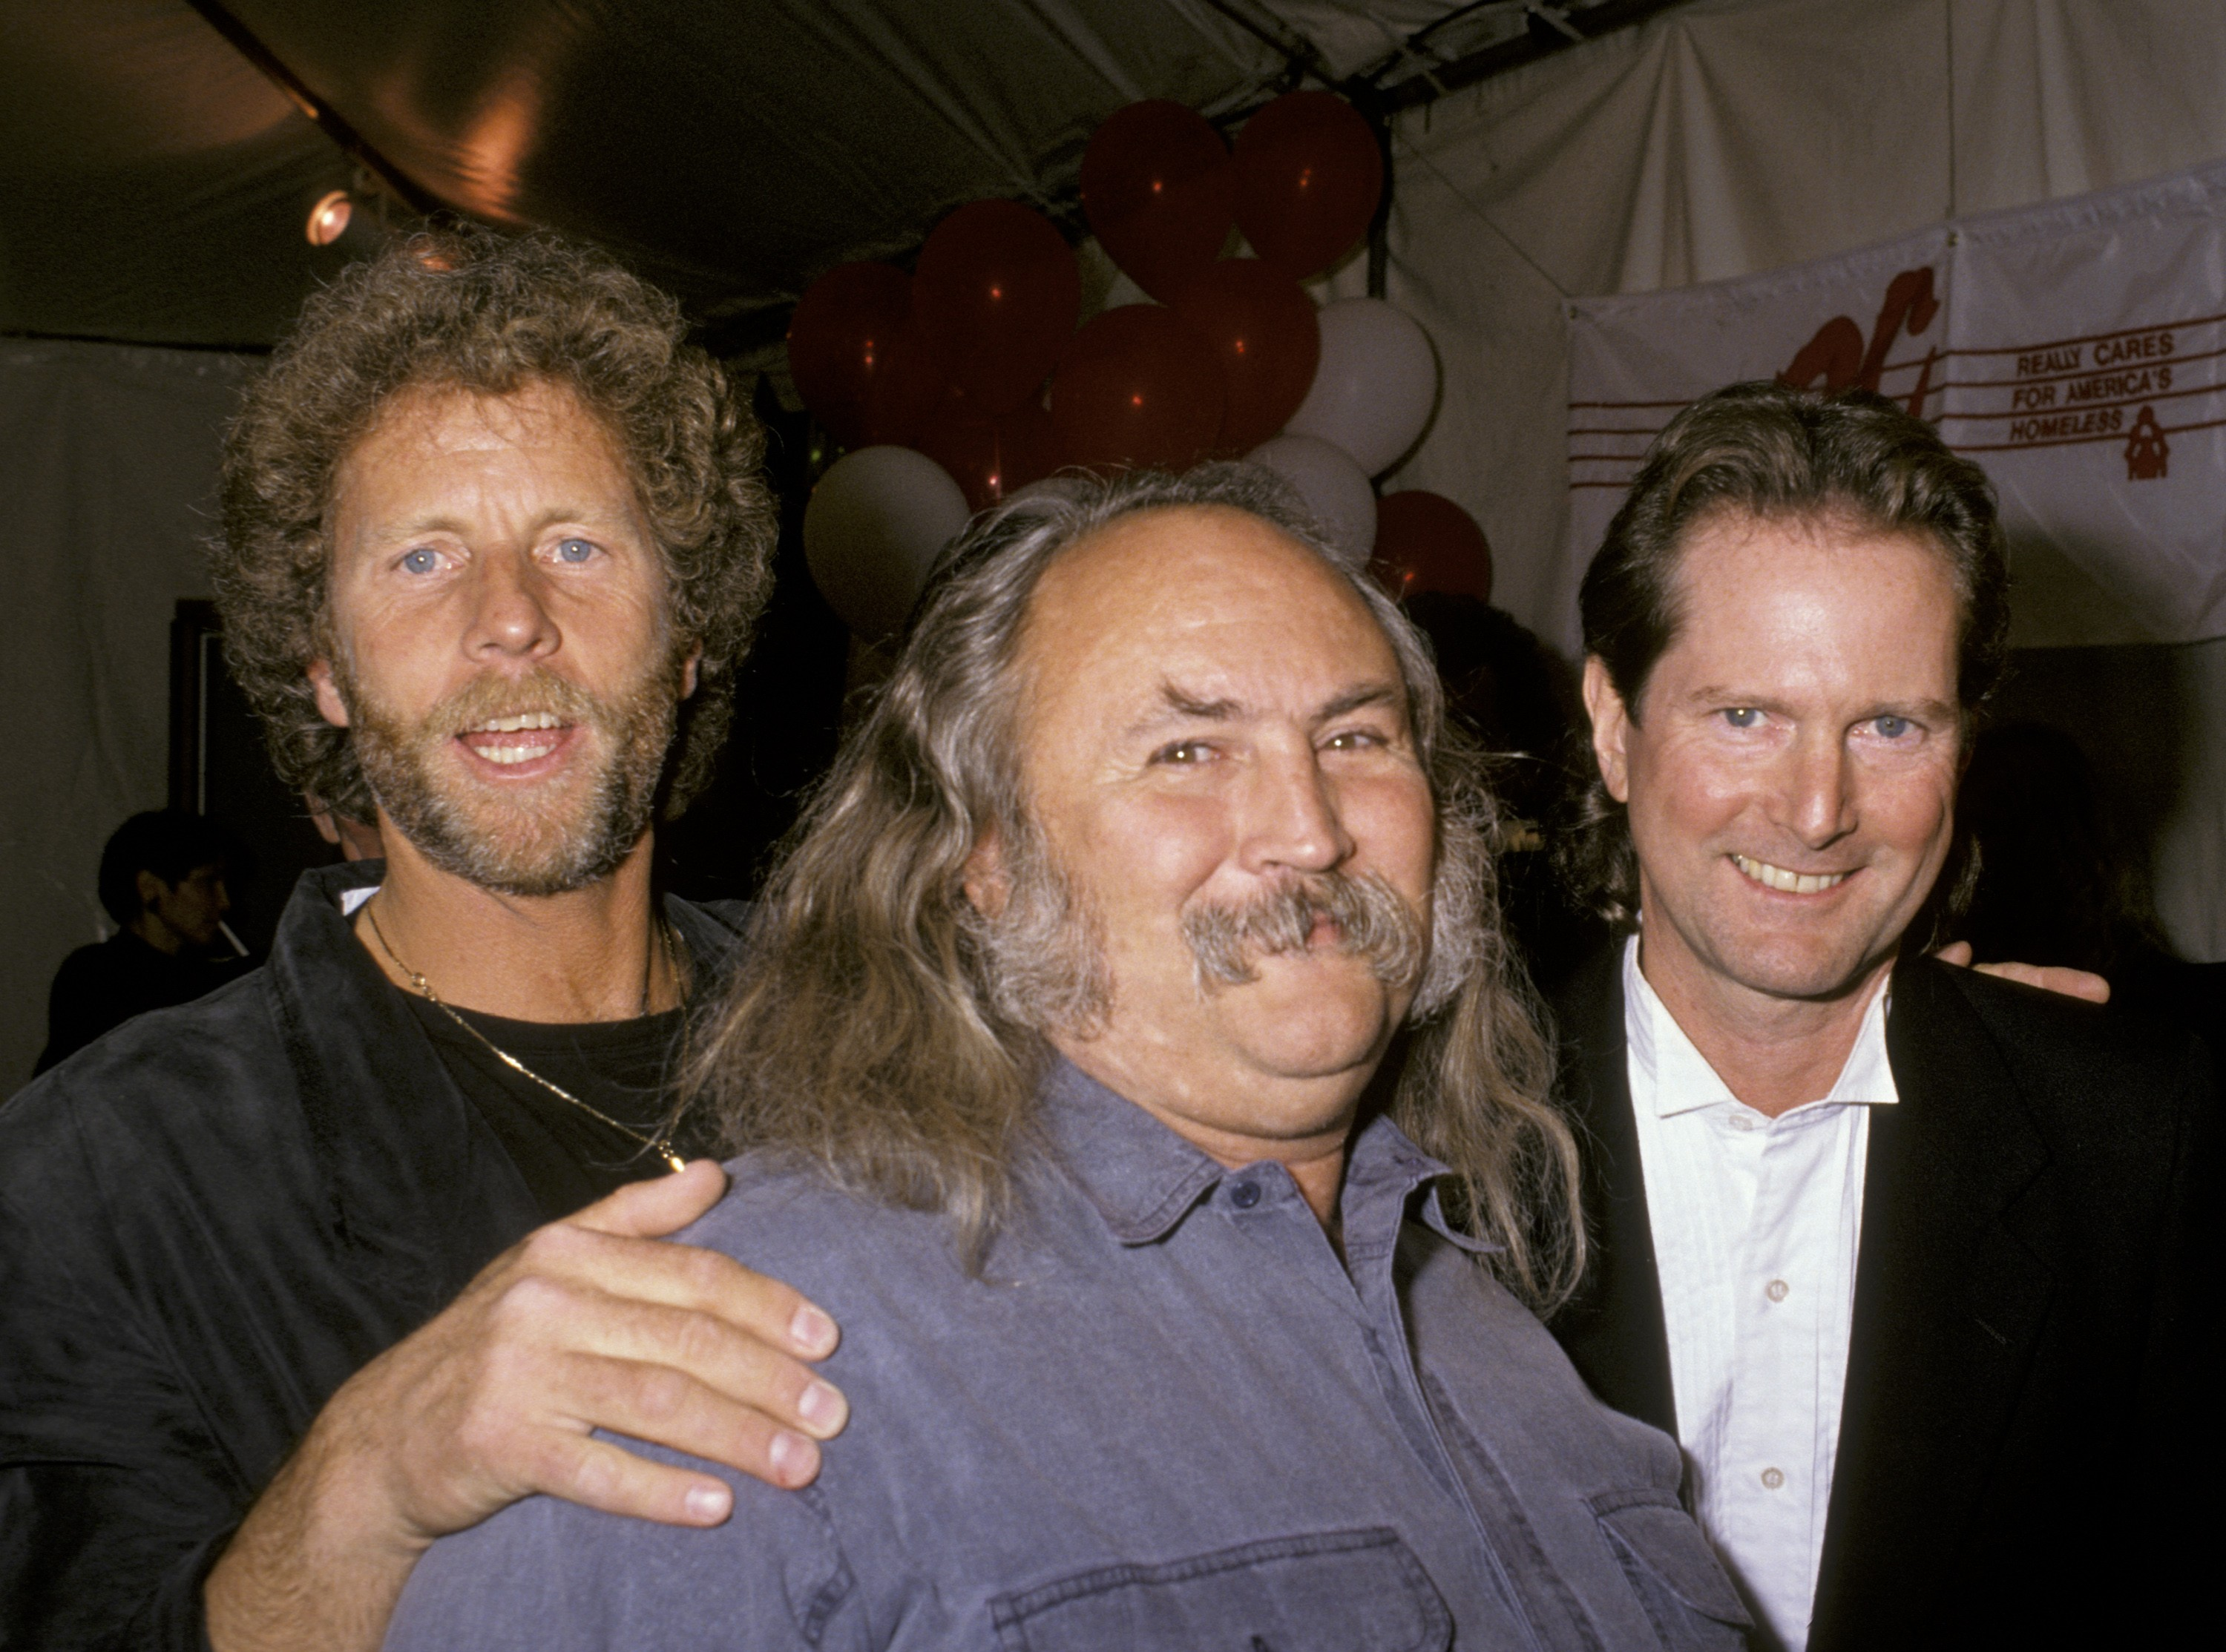 Byrds Reunion: David Crosby's Down, But Not Roger McGuinn - Stereogum